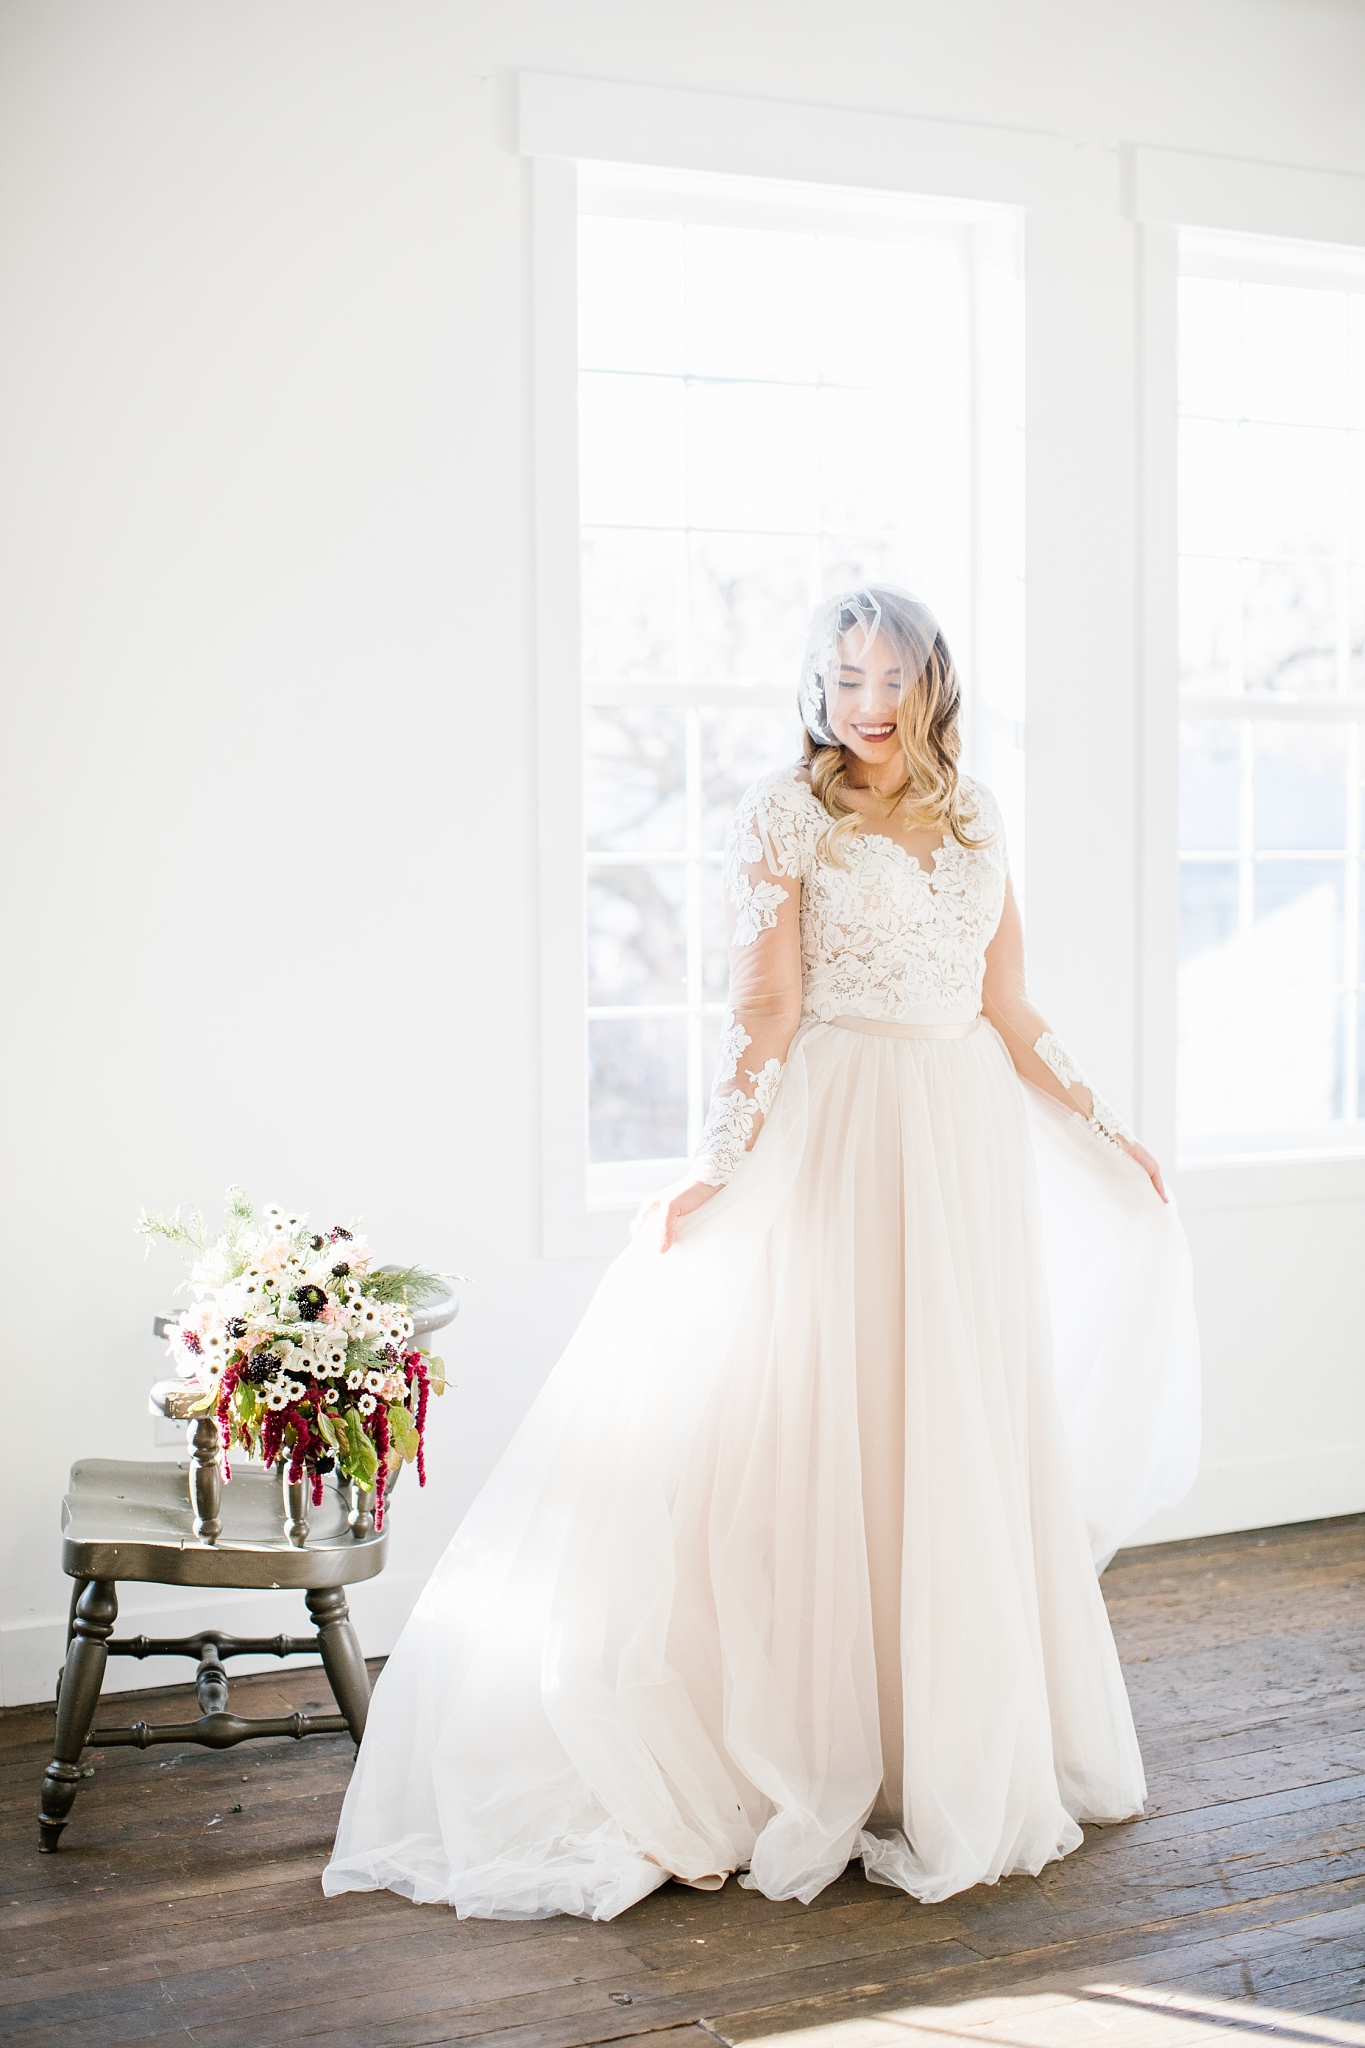 748A1222-Edit-56_Lizzie-B-Imagery-Utah-Wedding-Photographer-Park-City-Wedding-Photographer-The-Loft-Studio-Lehi-Utah.jpg